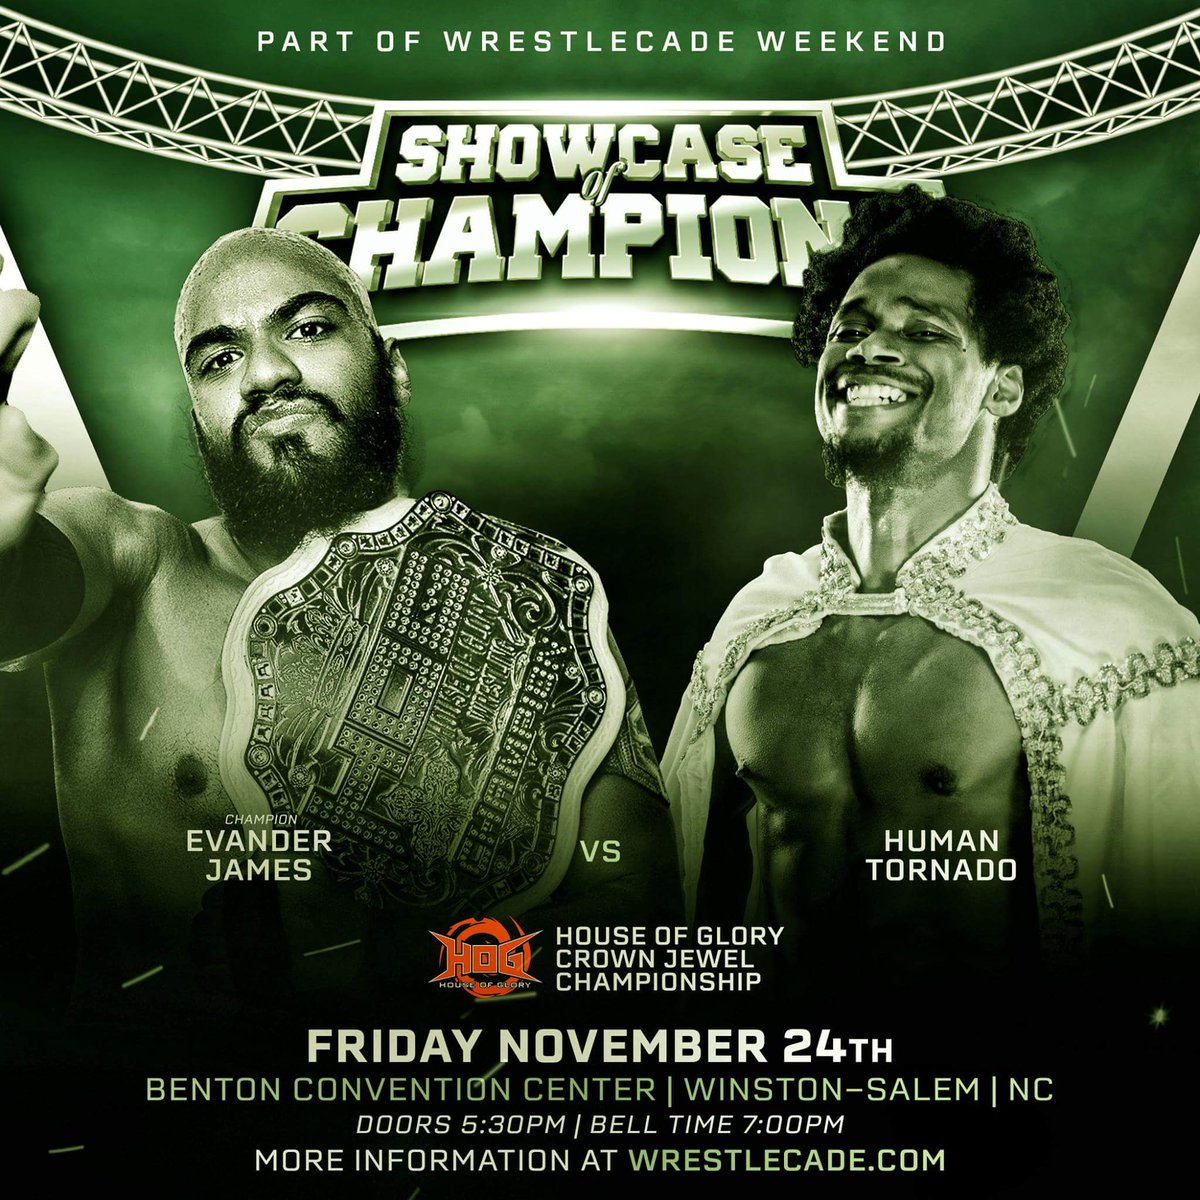 Looks like Im taking my talents to North Carolina, and Ill put the #hogwrestling #crownjewel on the line!!! You can #trustthat